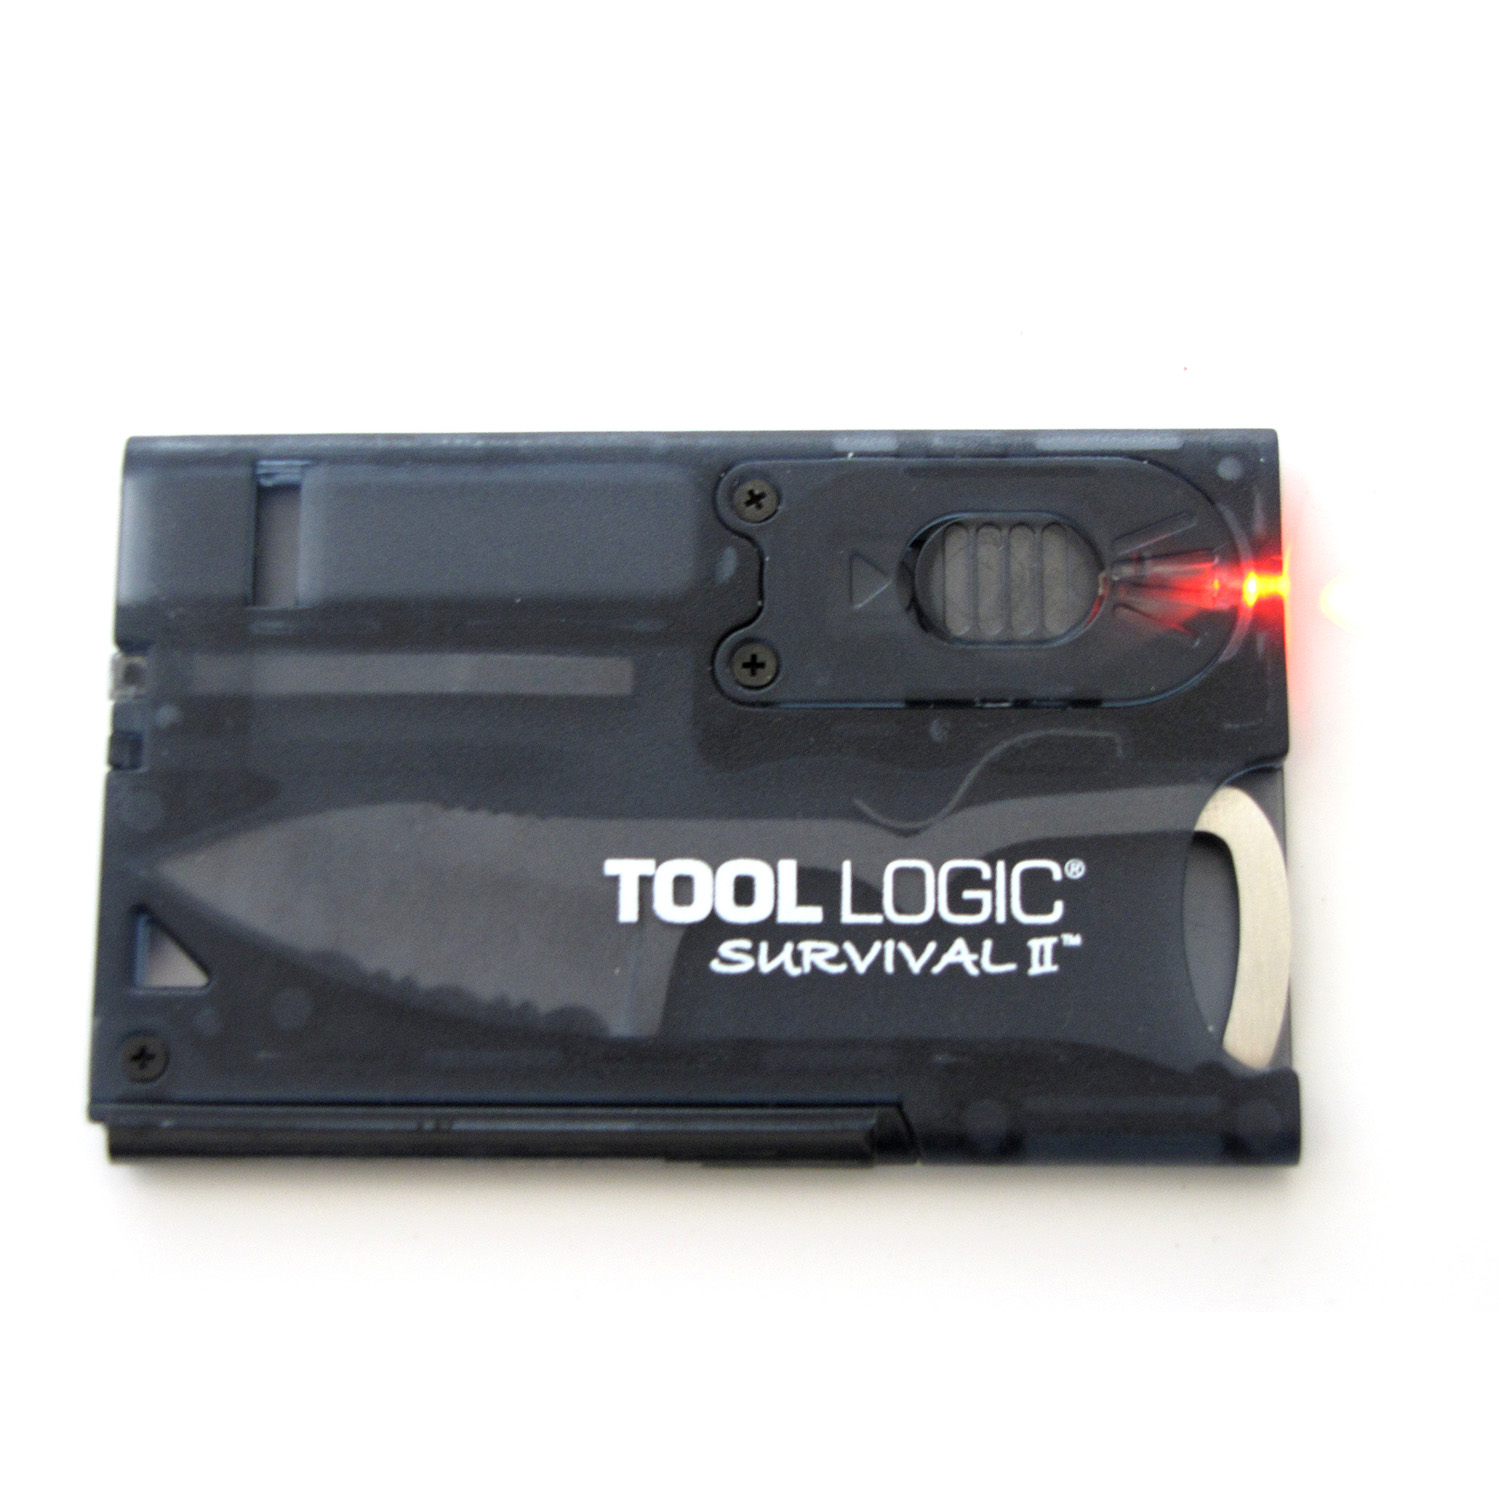 Tool Logic Survival Card with Fire Starter and Light, Charcoal by Sog